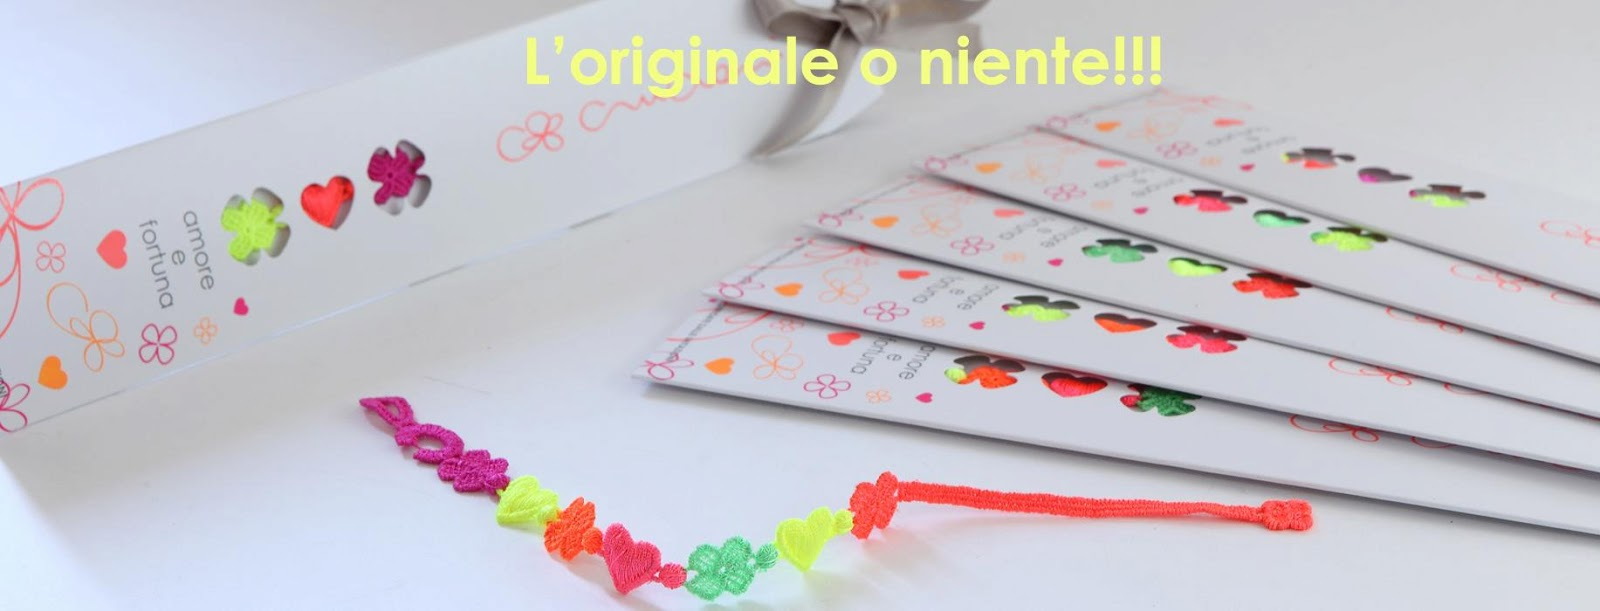 packaging braccialetti cruciani amore e fortuna multicolor fluo